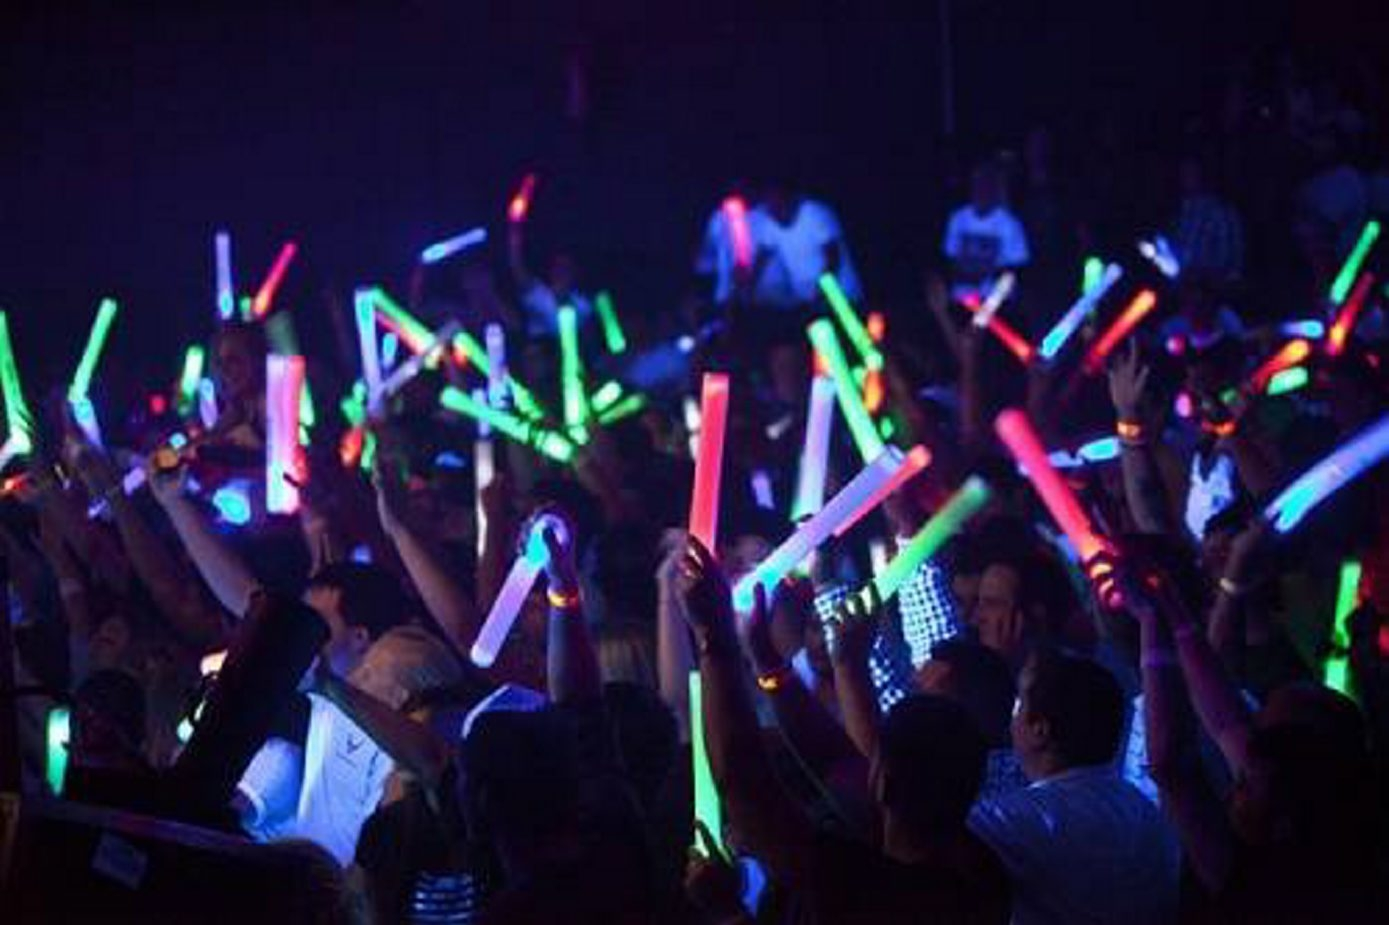 Radio-controlled glow sticks will be park of the Darien Lake laser show.